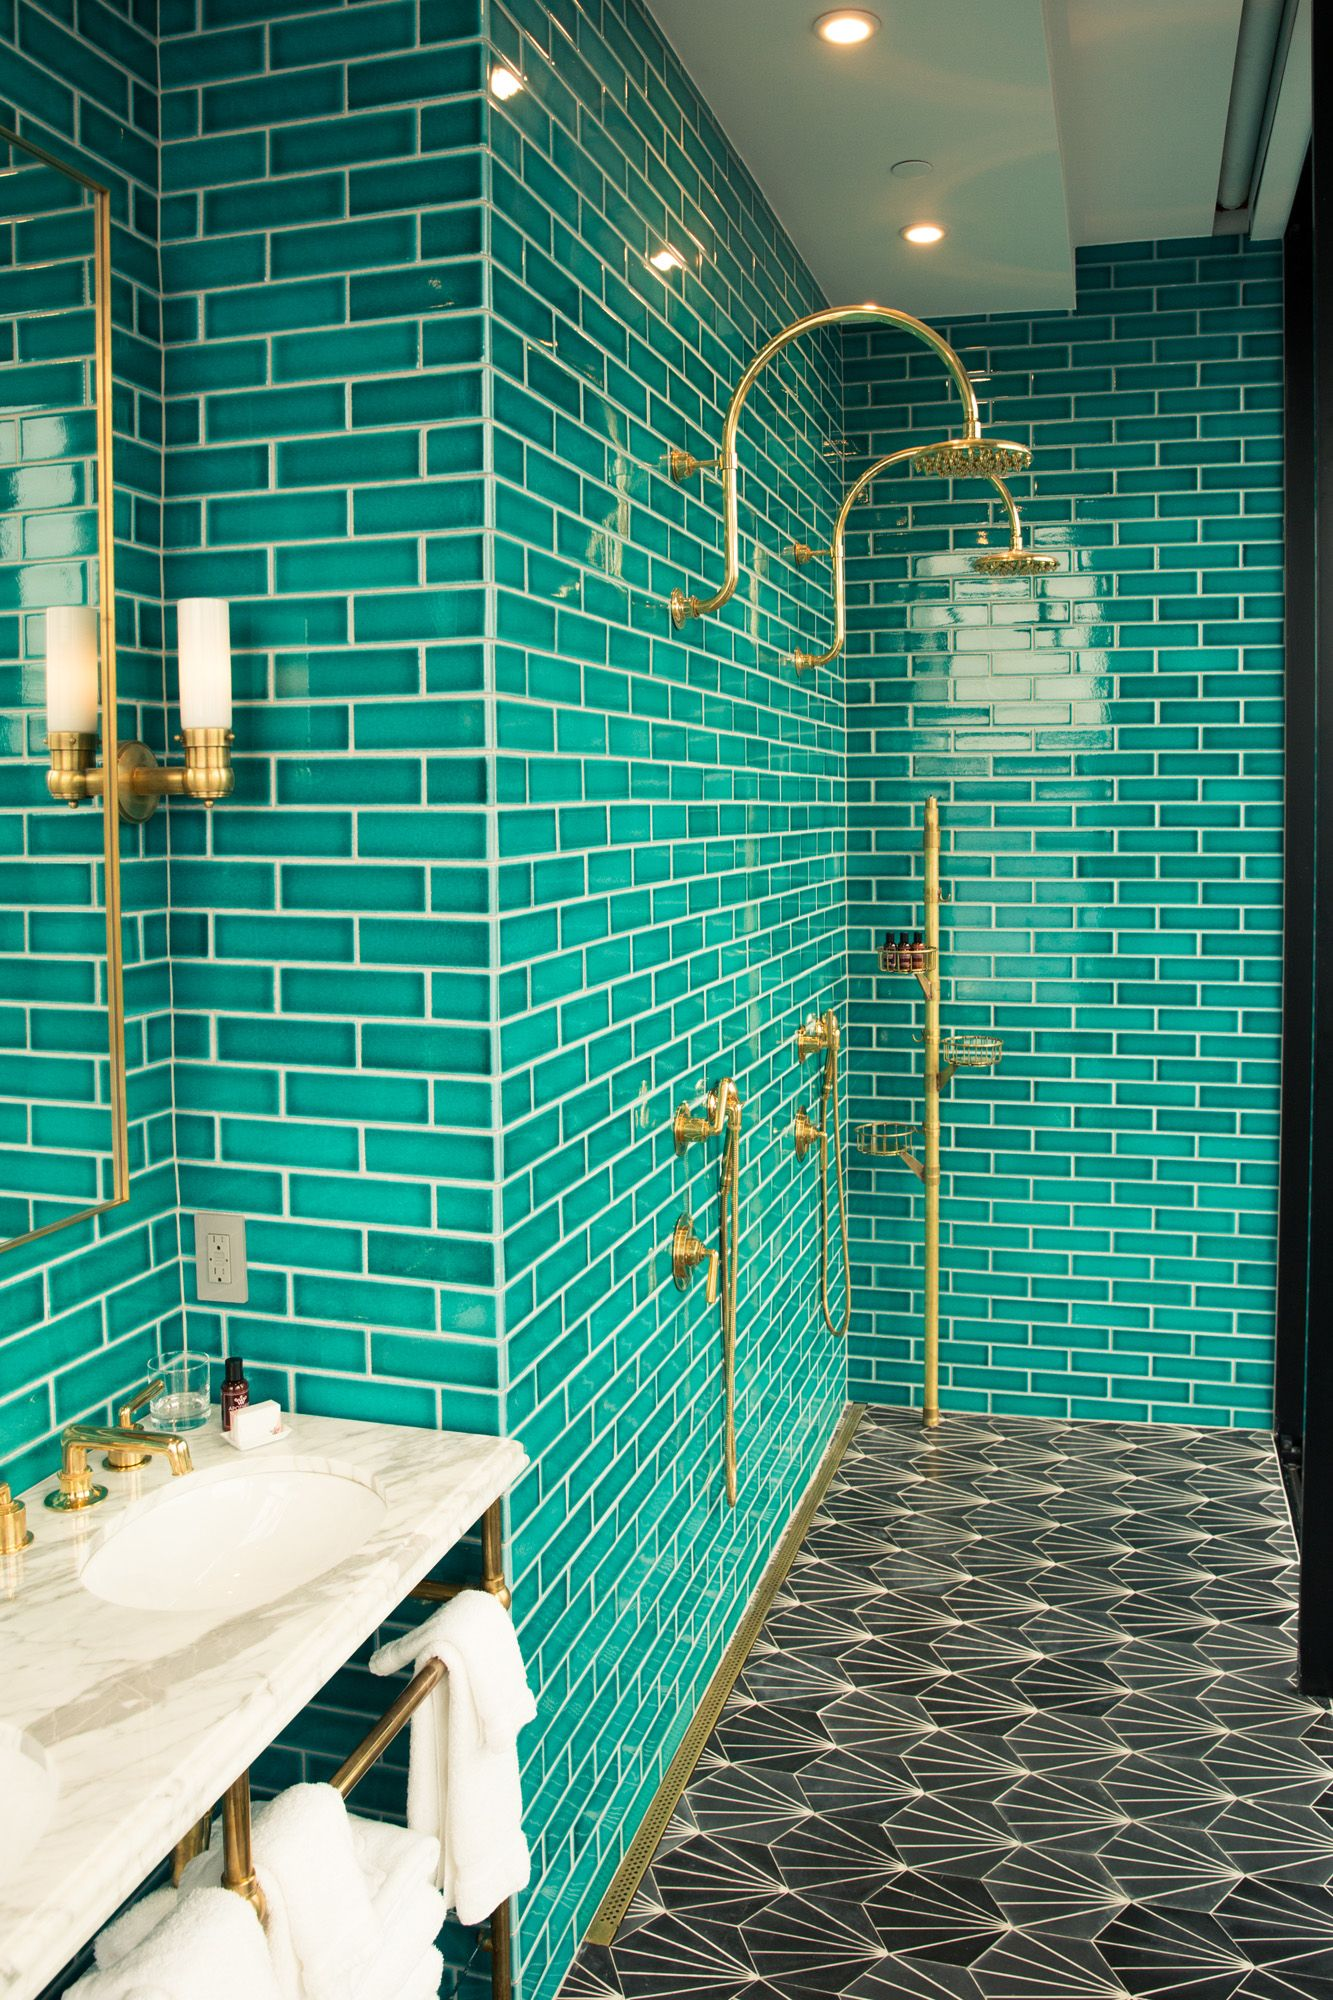 Steely With Style | Teal, Elegant and Soho house berlin